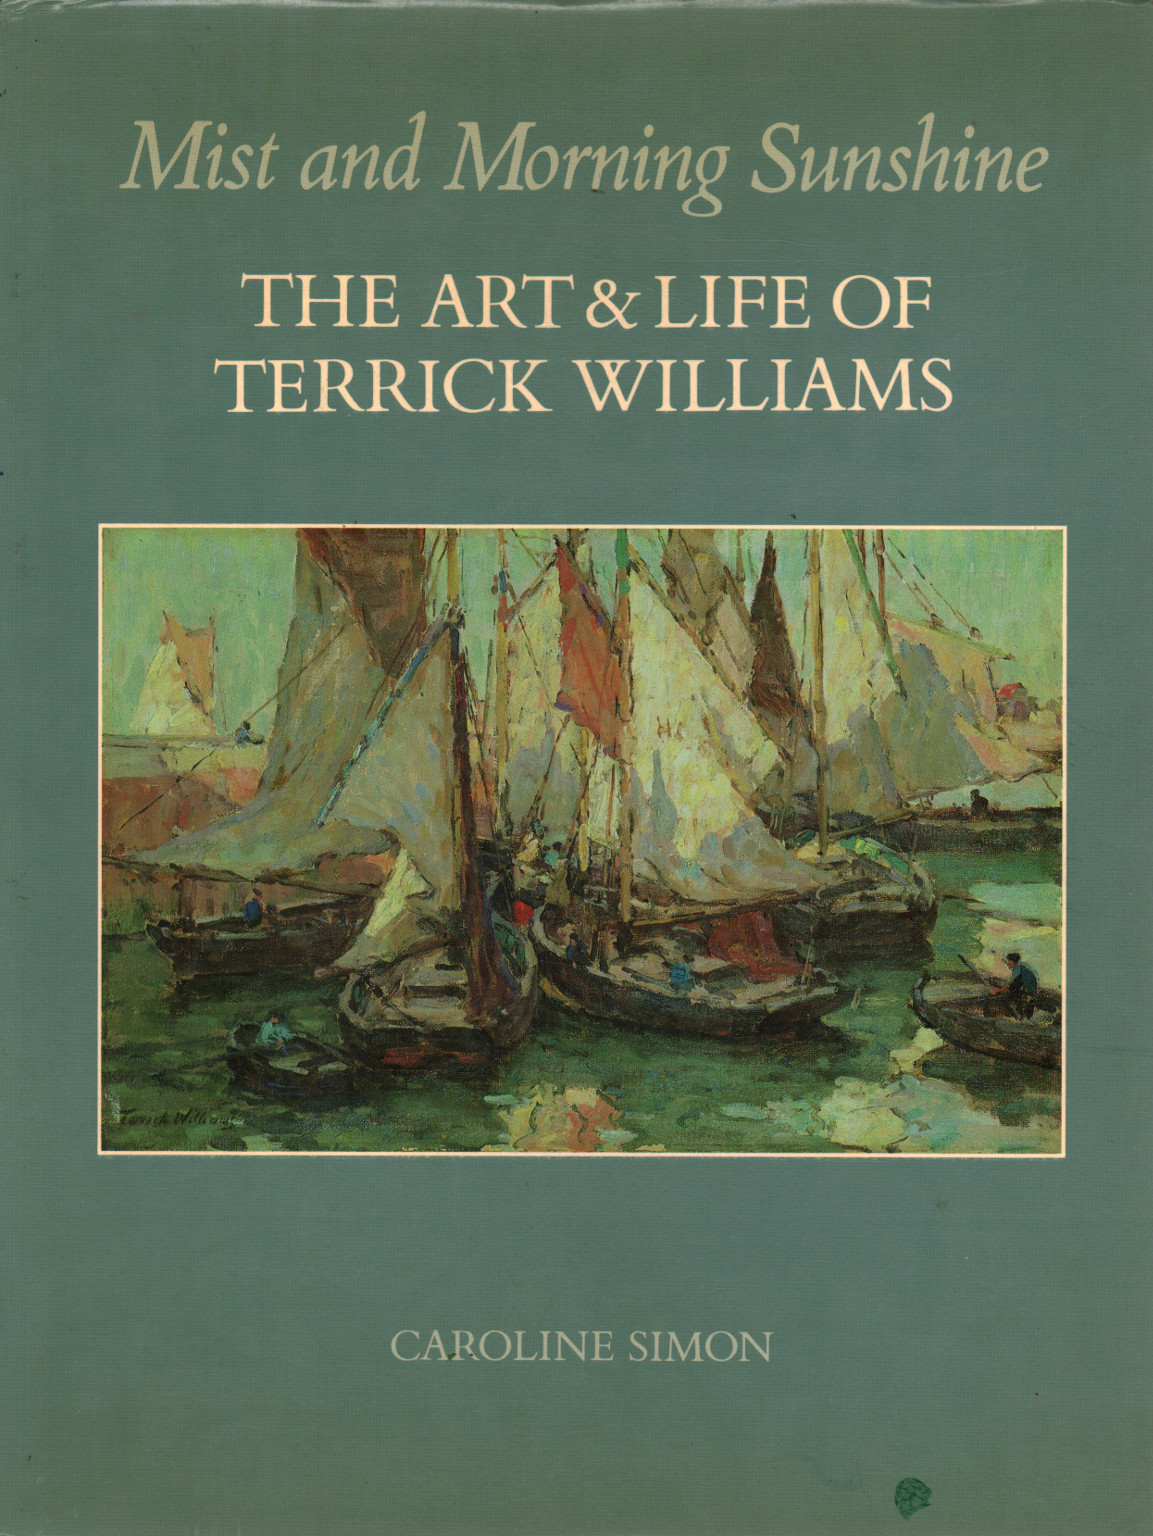 De l'art et de la vie de Terrick Williams, s.un.